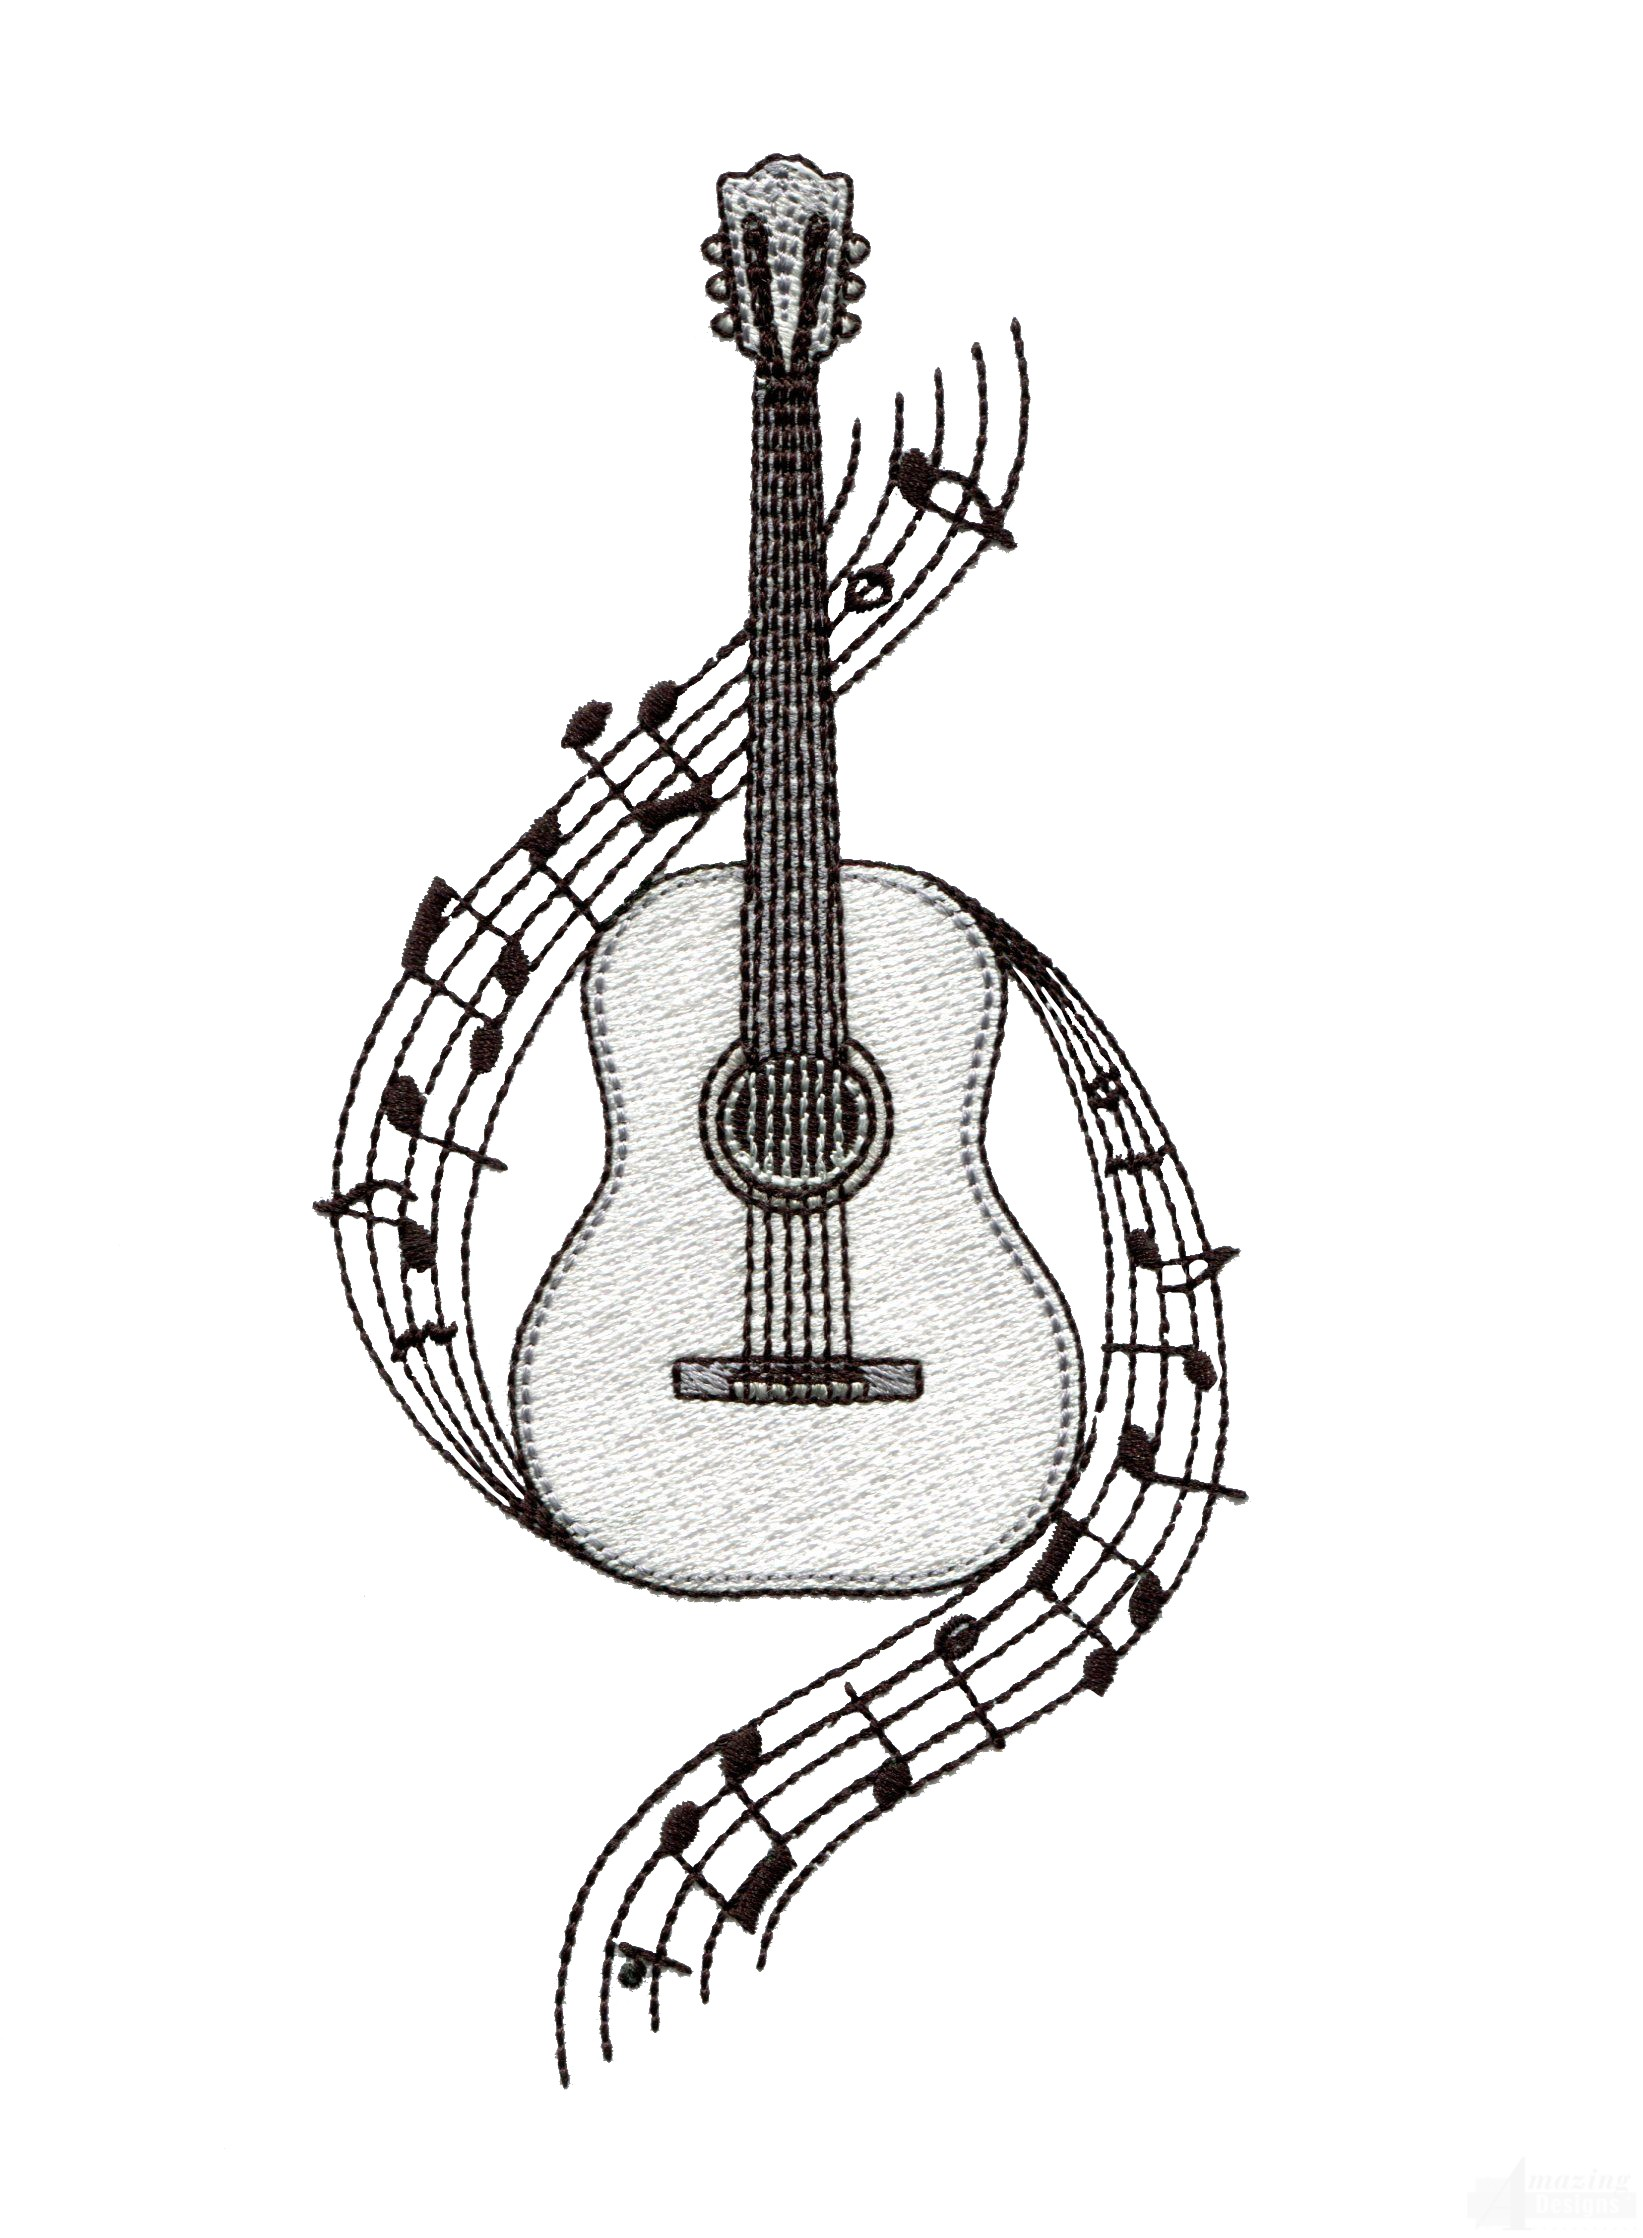 Gallery For gt Black And White Acoustic Guitar Drawing